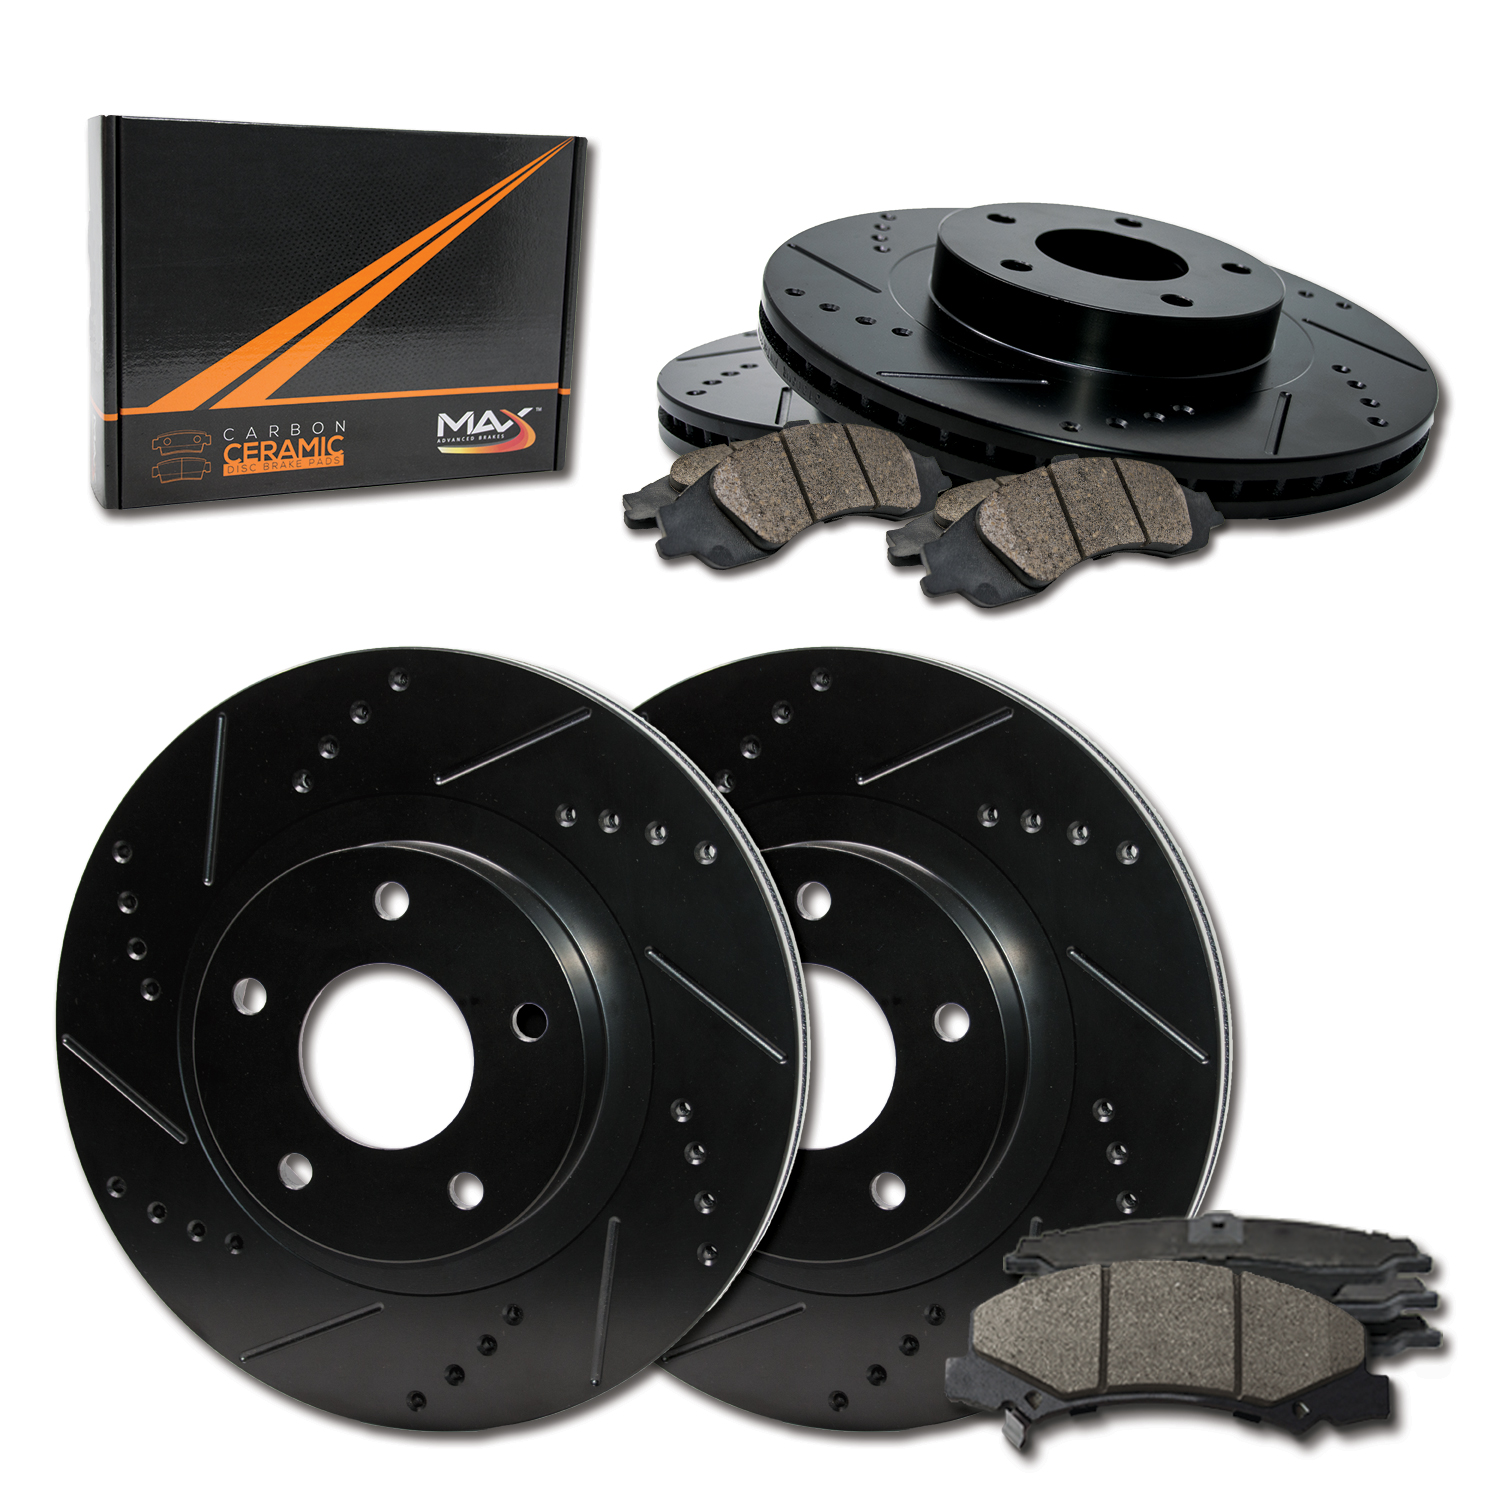 OE Series Rotors + Ceramic Pads KT055243 Max Brakes Front /& Rear Premium Brake Kit Fits: 2001 01 2002 02 2003 03 2004 04 2005 05 Ford Taurus